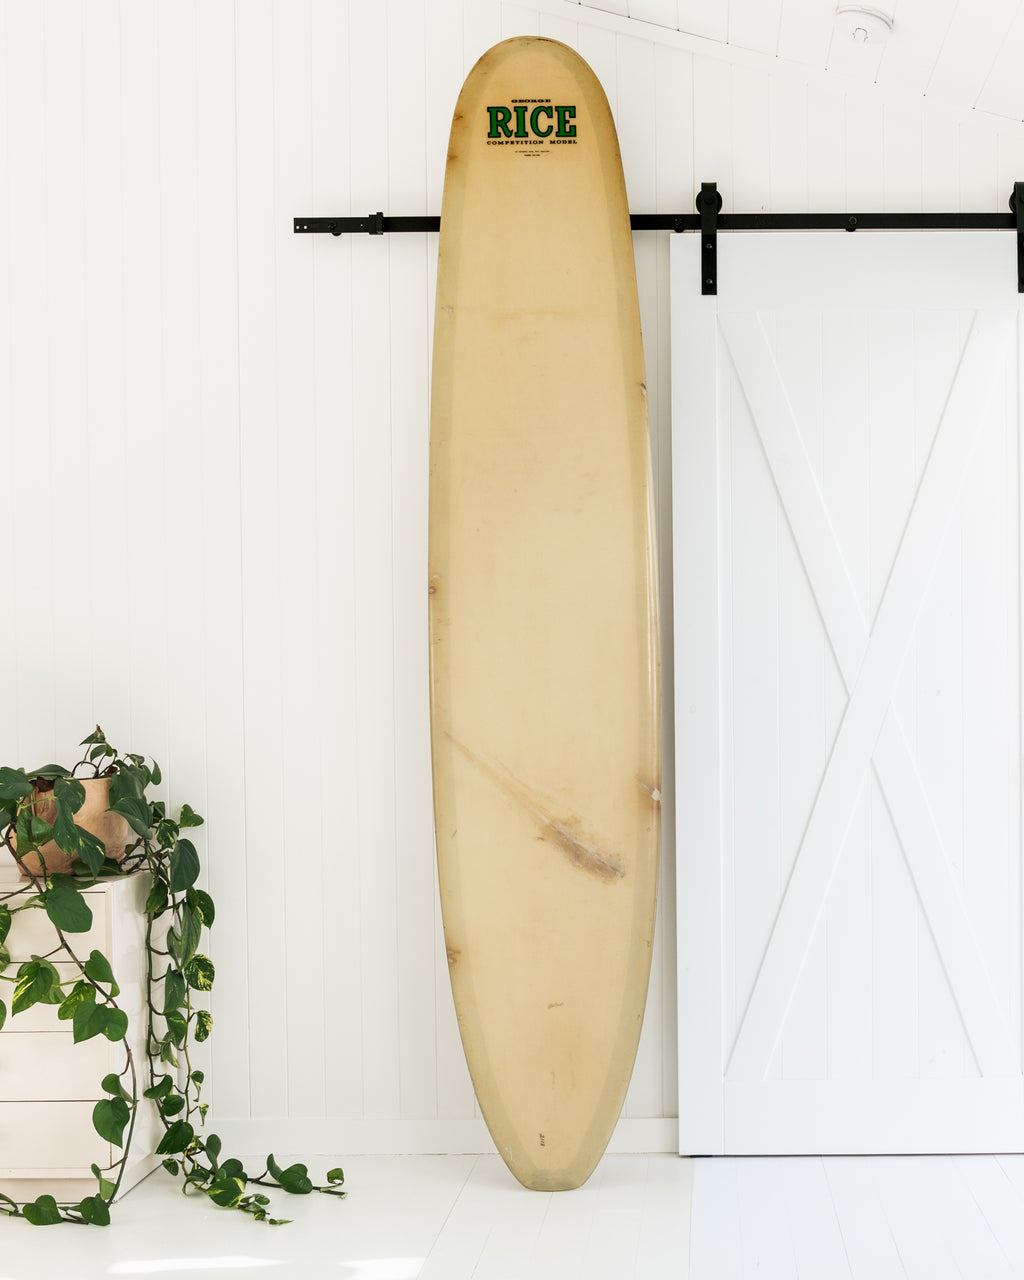 RICE - 9'6 Competition Single Fin, Longboard